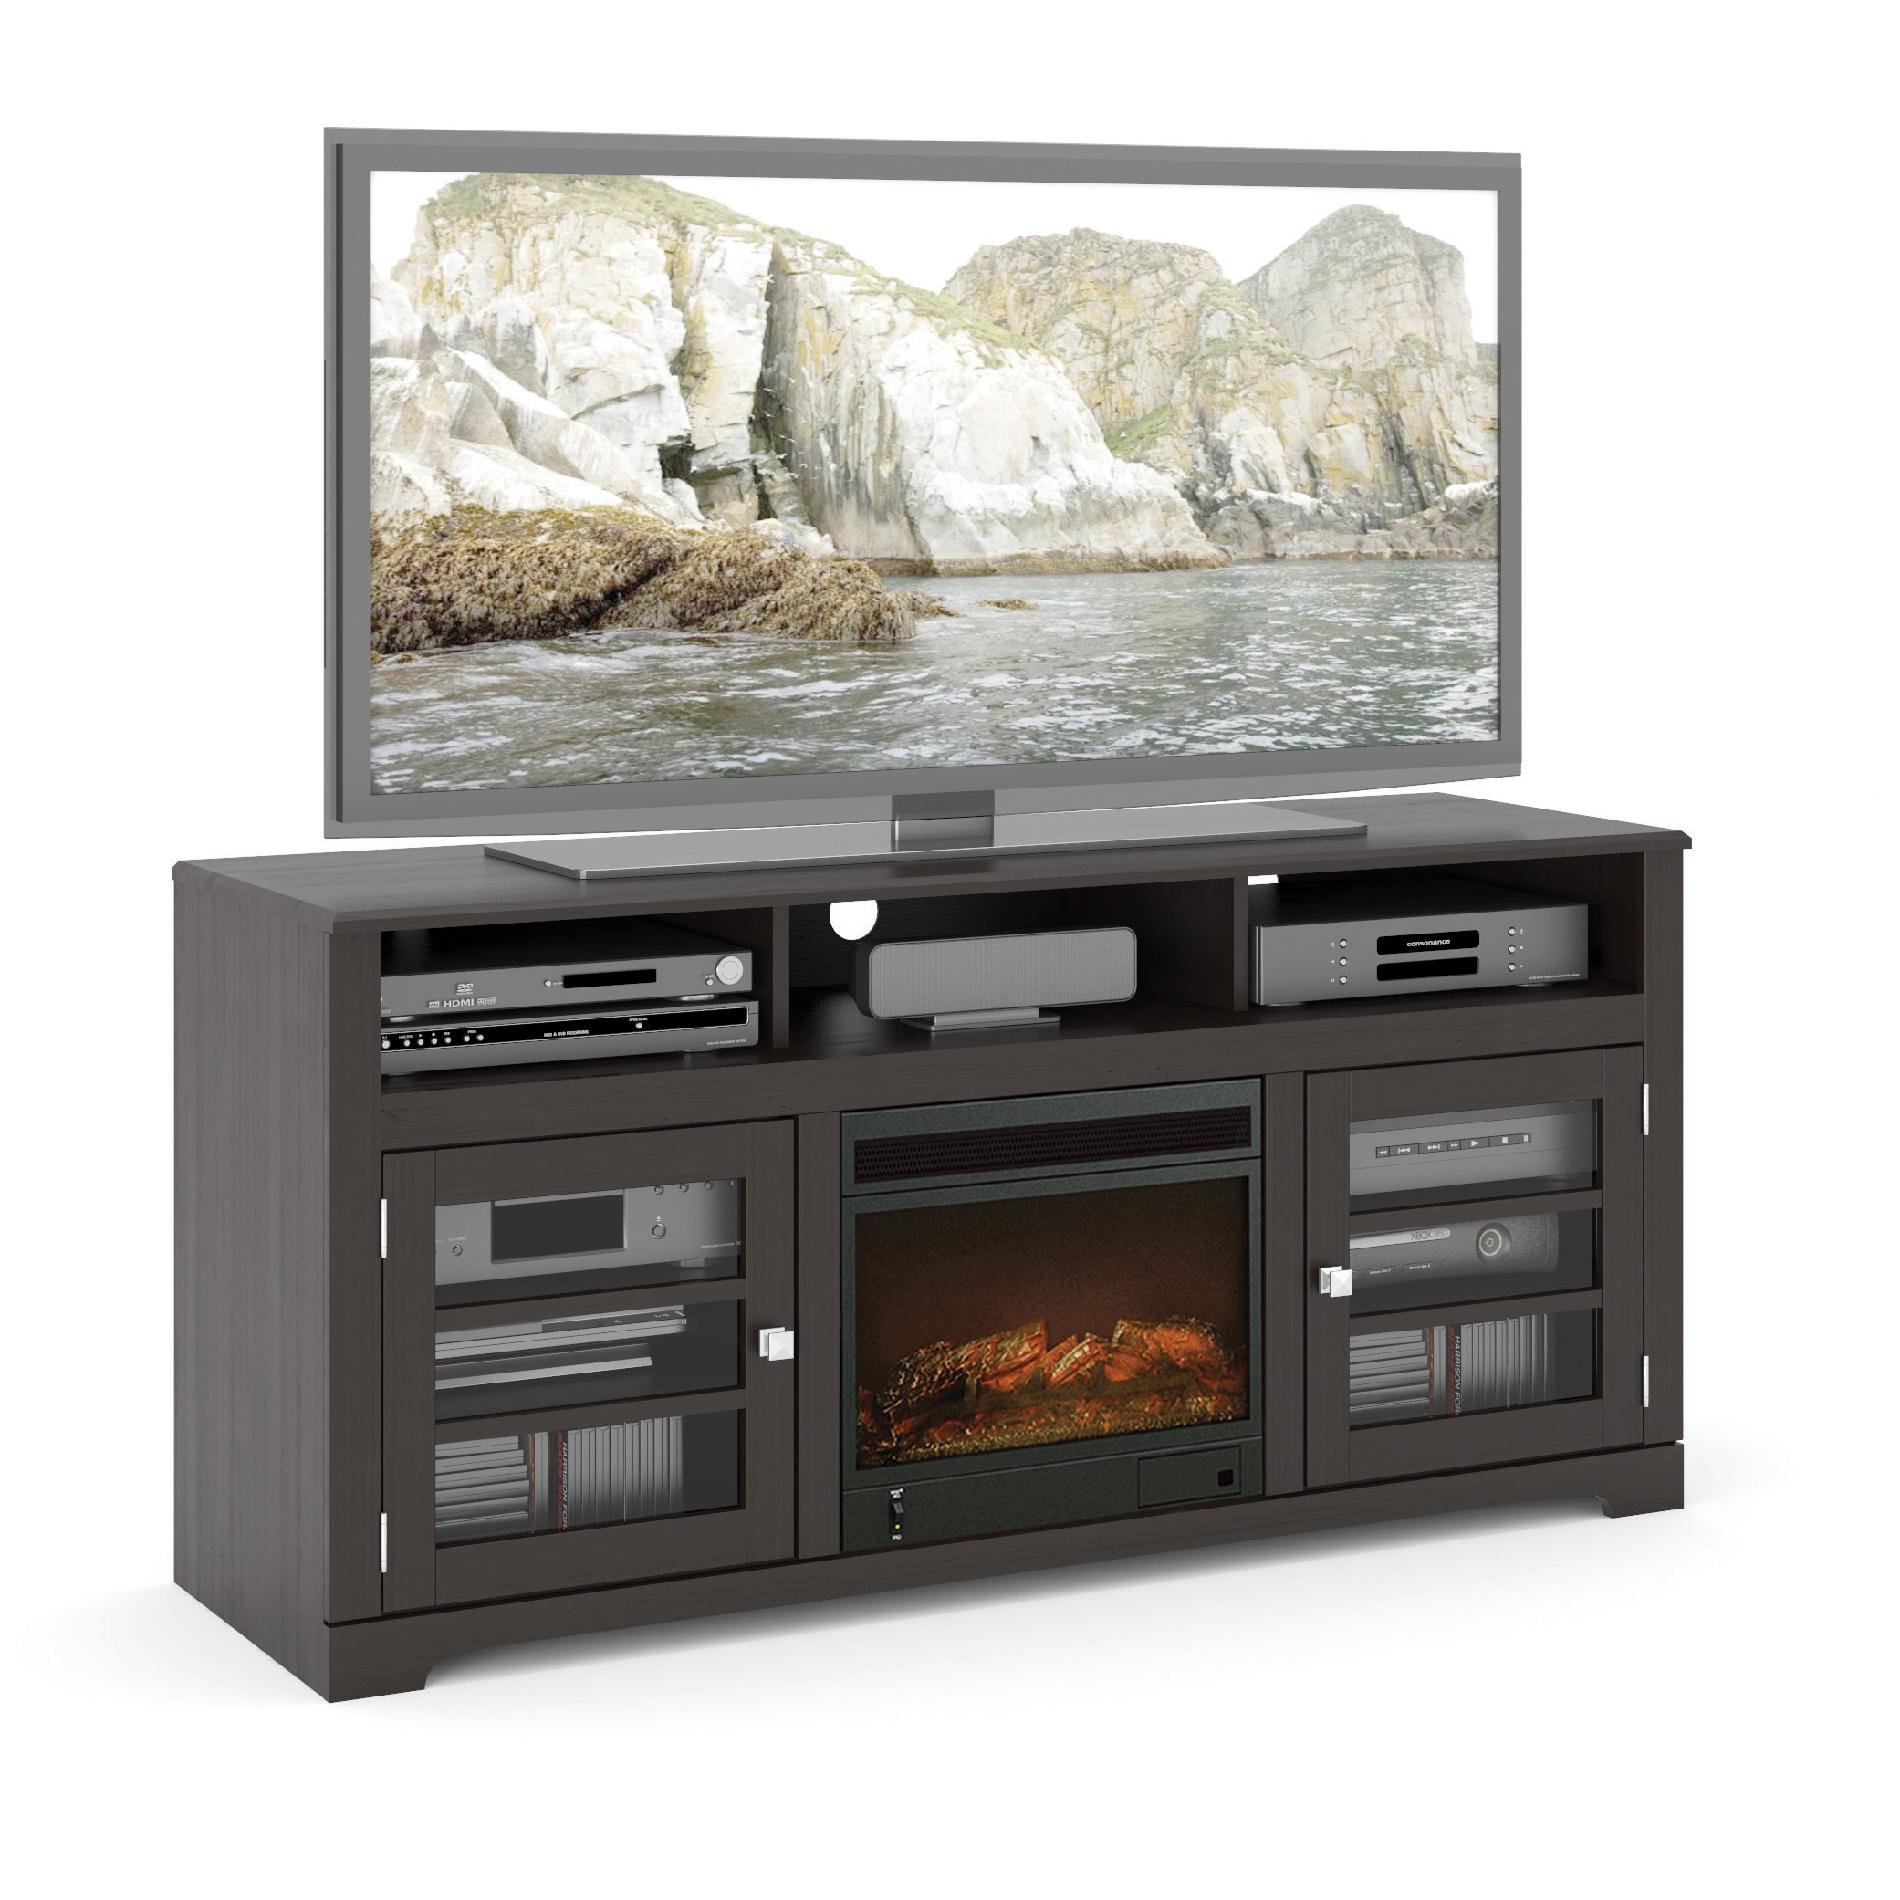 Best ideas about Kmart Fireplace Tv Stand . Save or Pin Traditional Tv Entertainment Center Now.